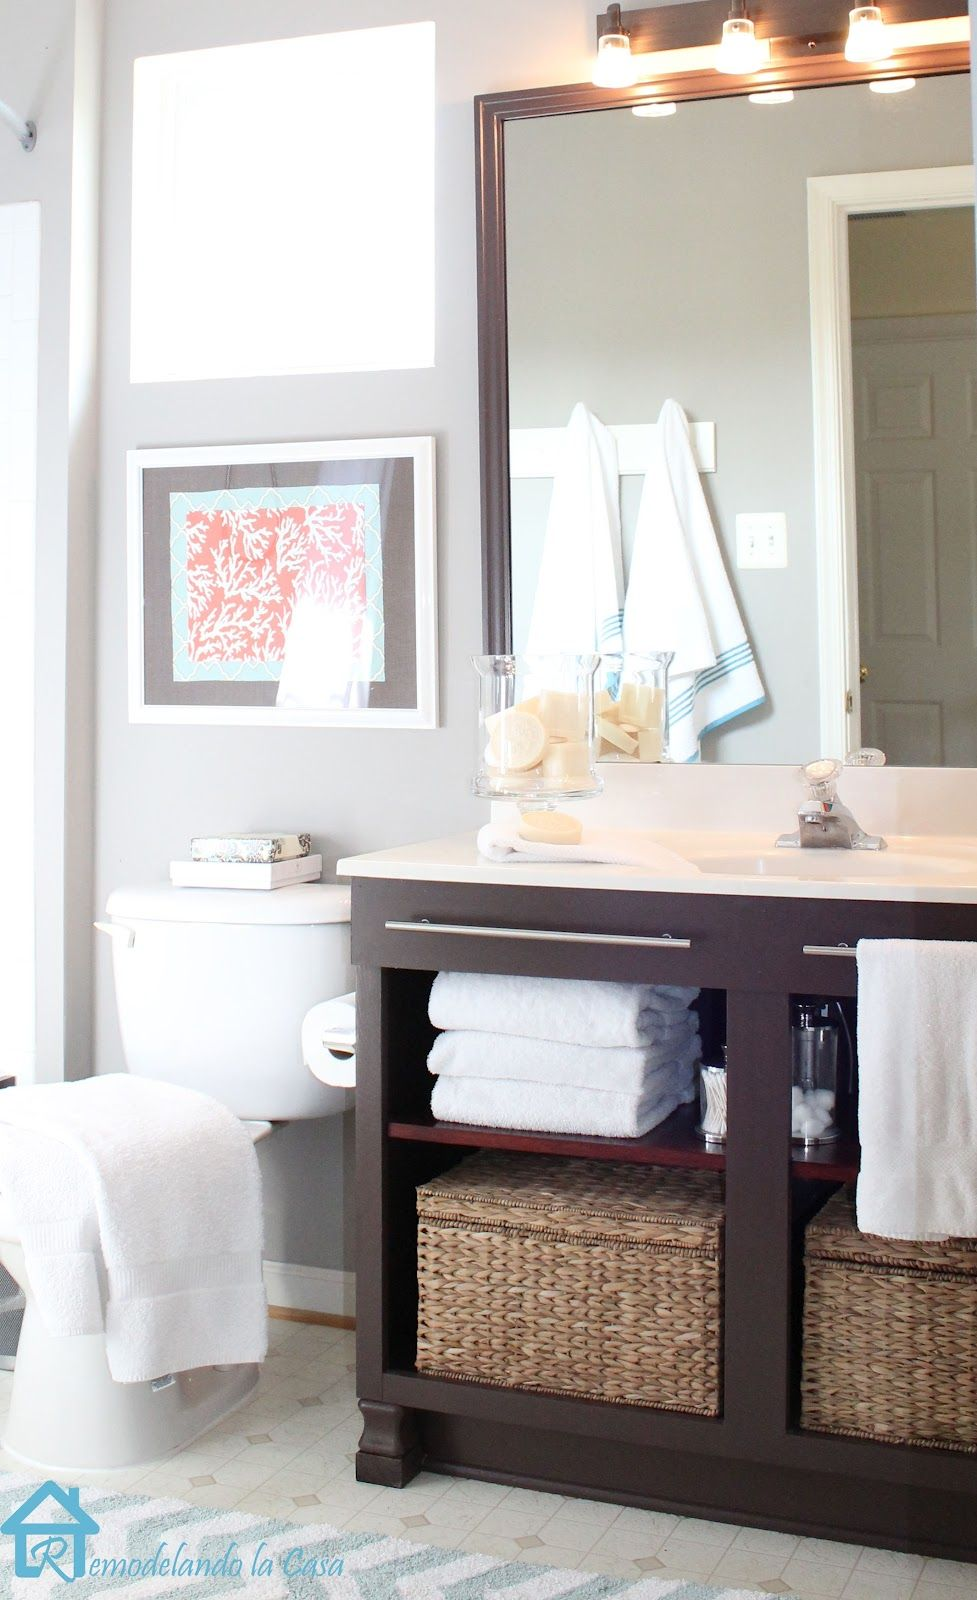 Diy bathroom vanity makeover - Bathroom Vanity Makeover Remove Existing Cabinet Doors Refinish And Add A Shelf